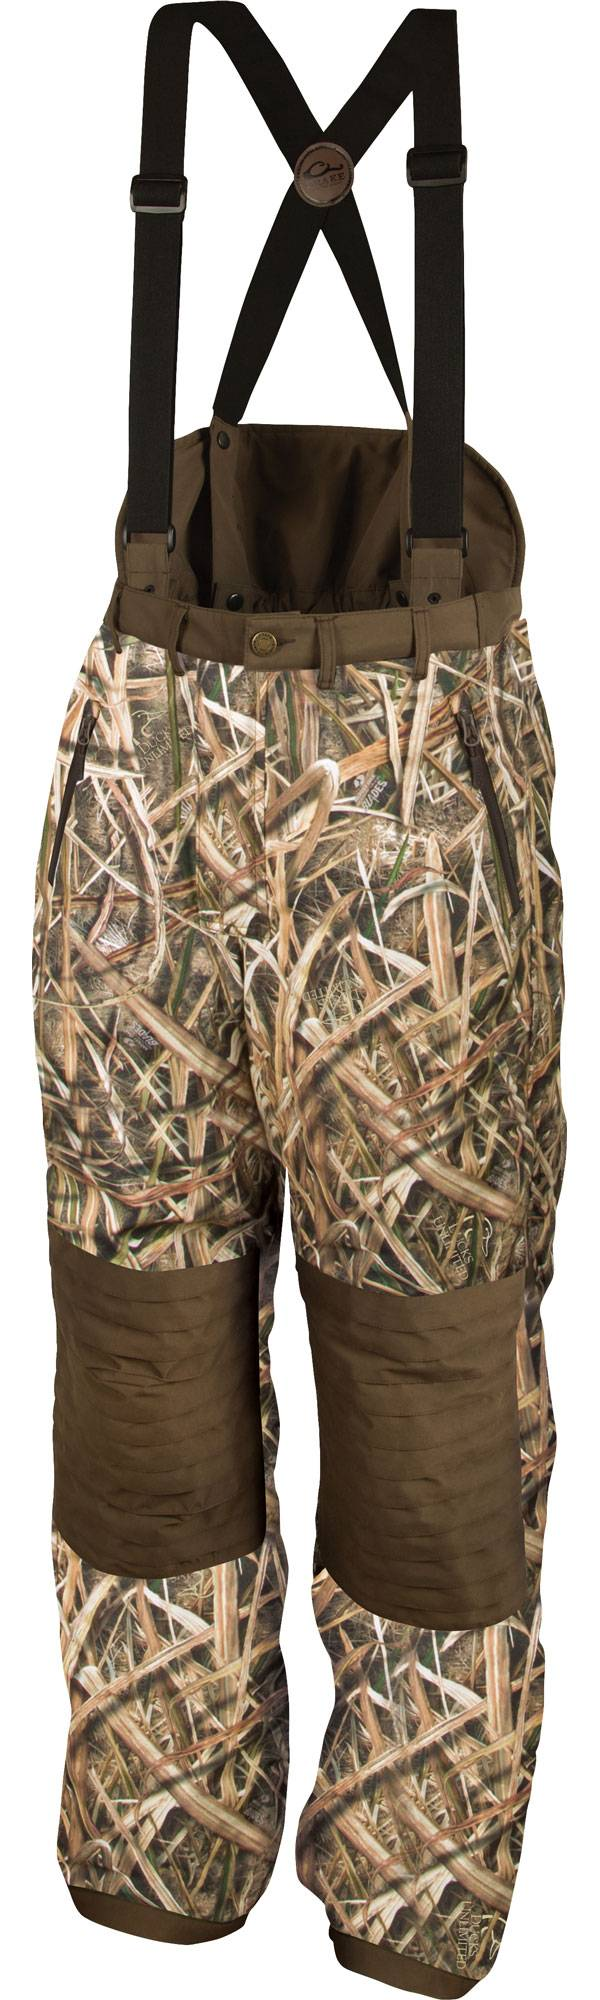 Drake Waterfowl Men's Guardian Elite High-Back Insulated Hunting Pants product image